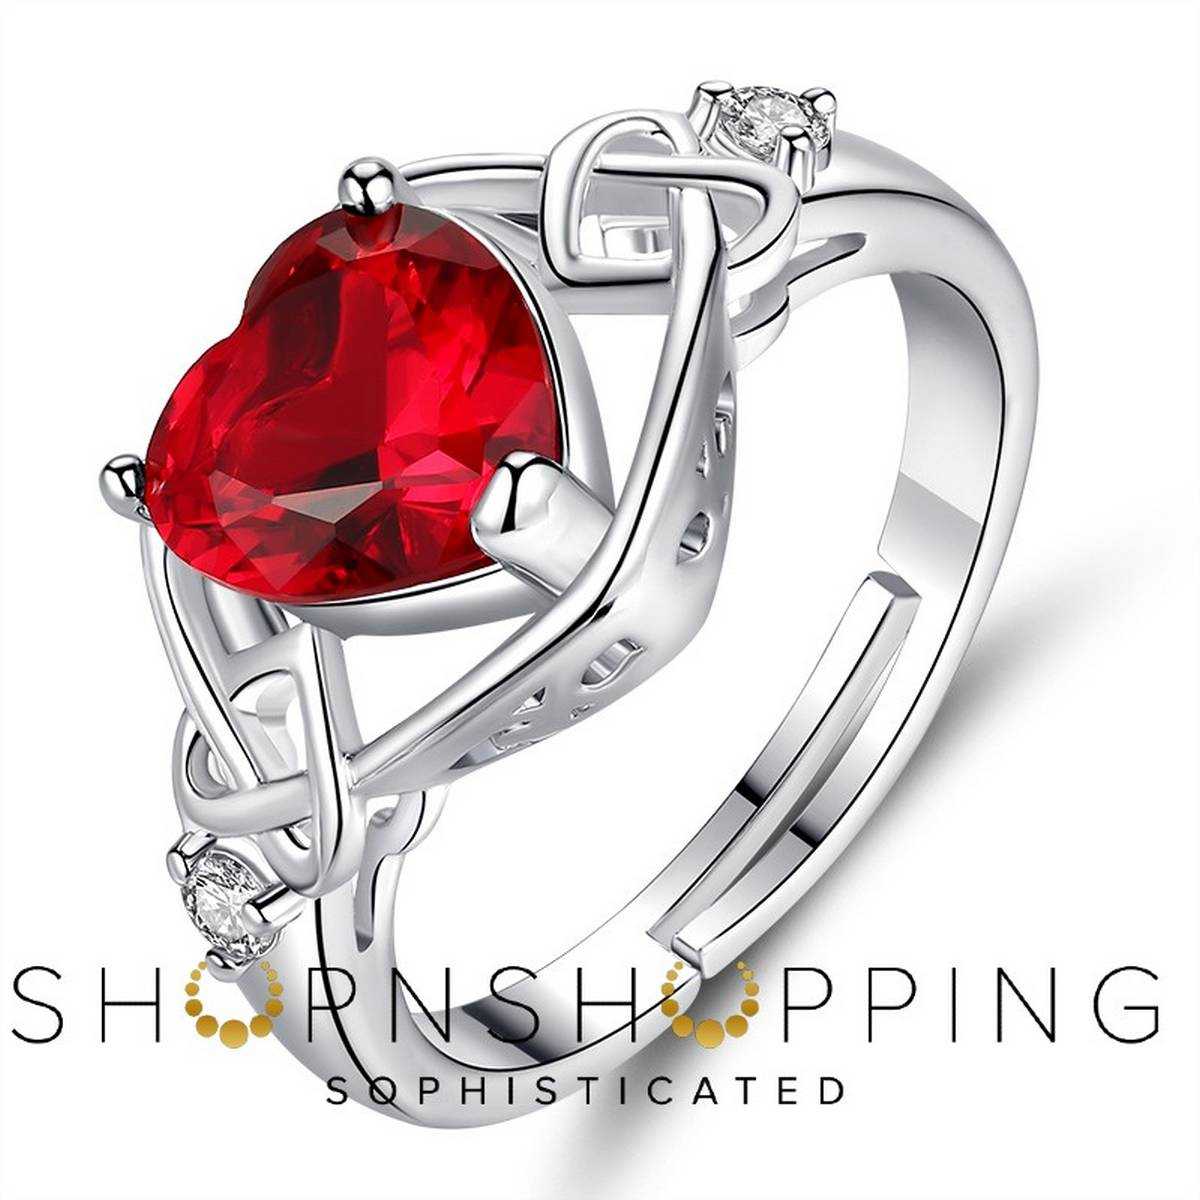 Imported High Quality Valentine Red Heart Zircon Rings for Girls Women - RHR01